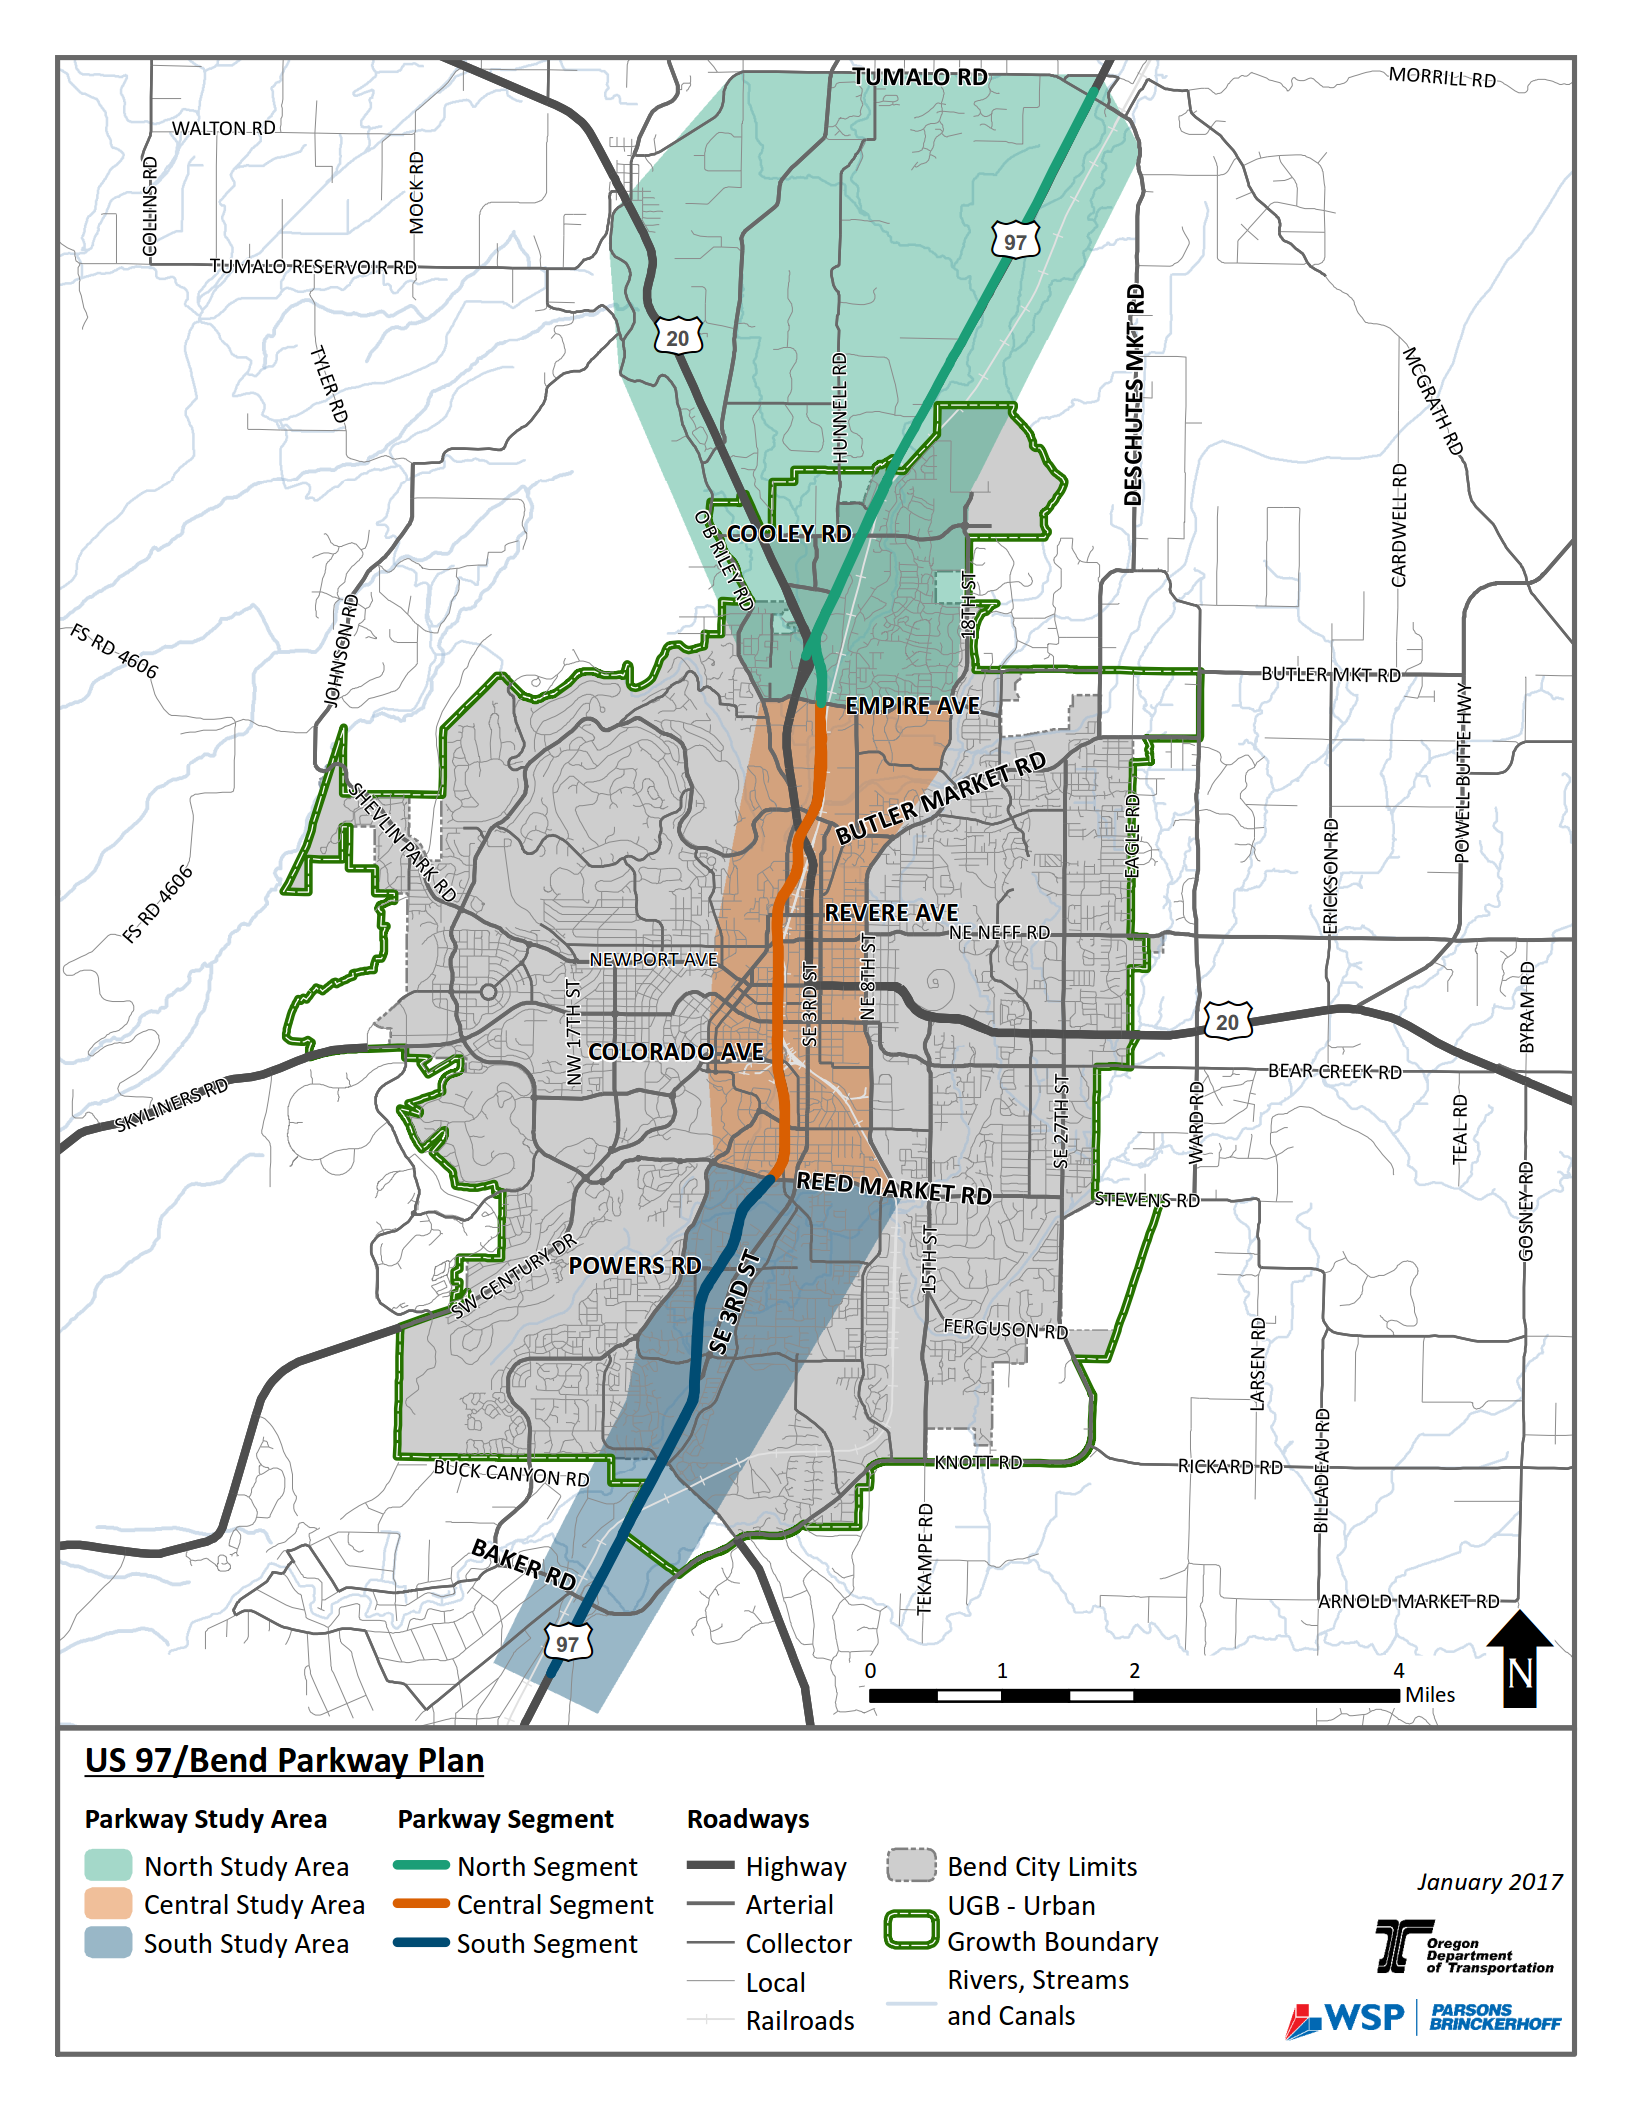 Map of Bend Parkway Plan Study Area